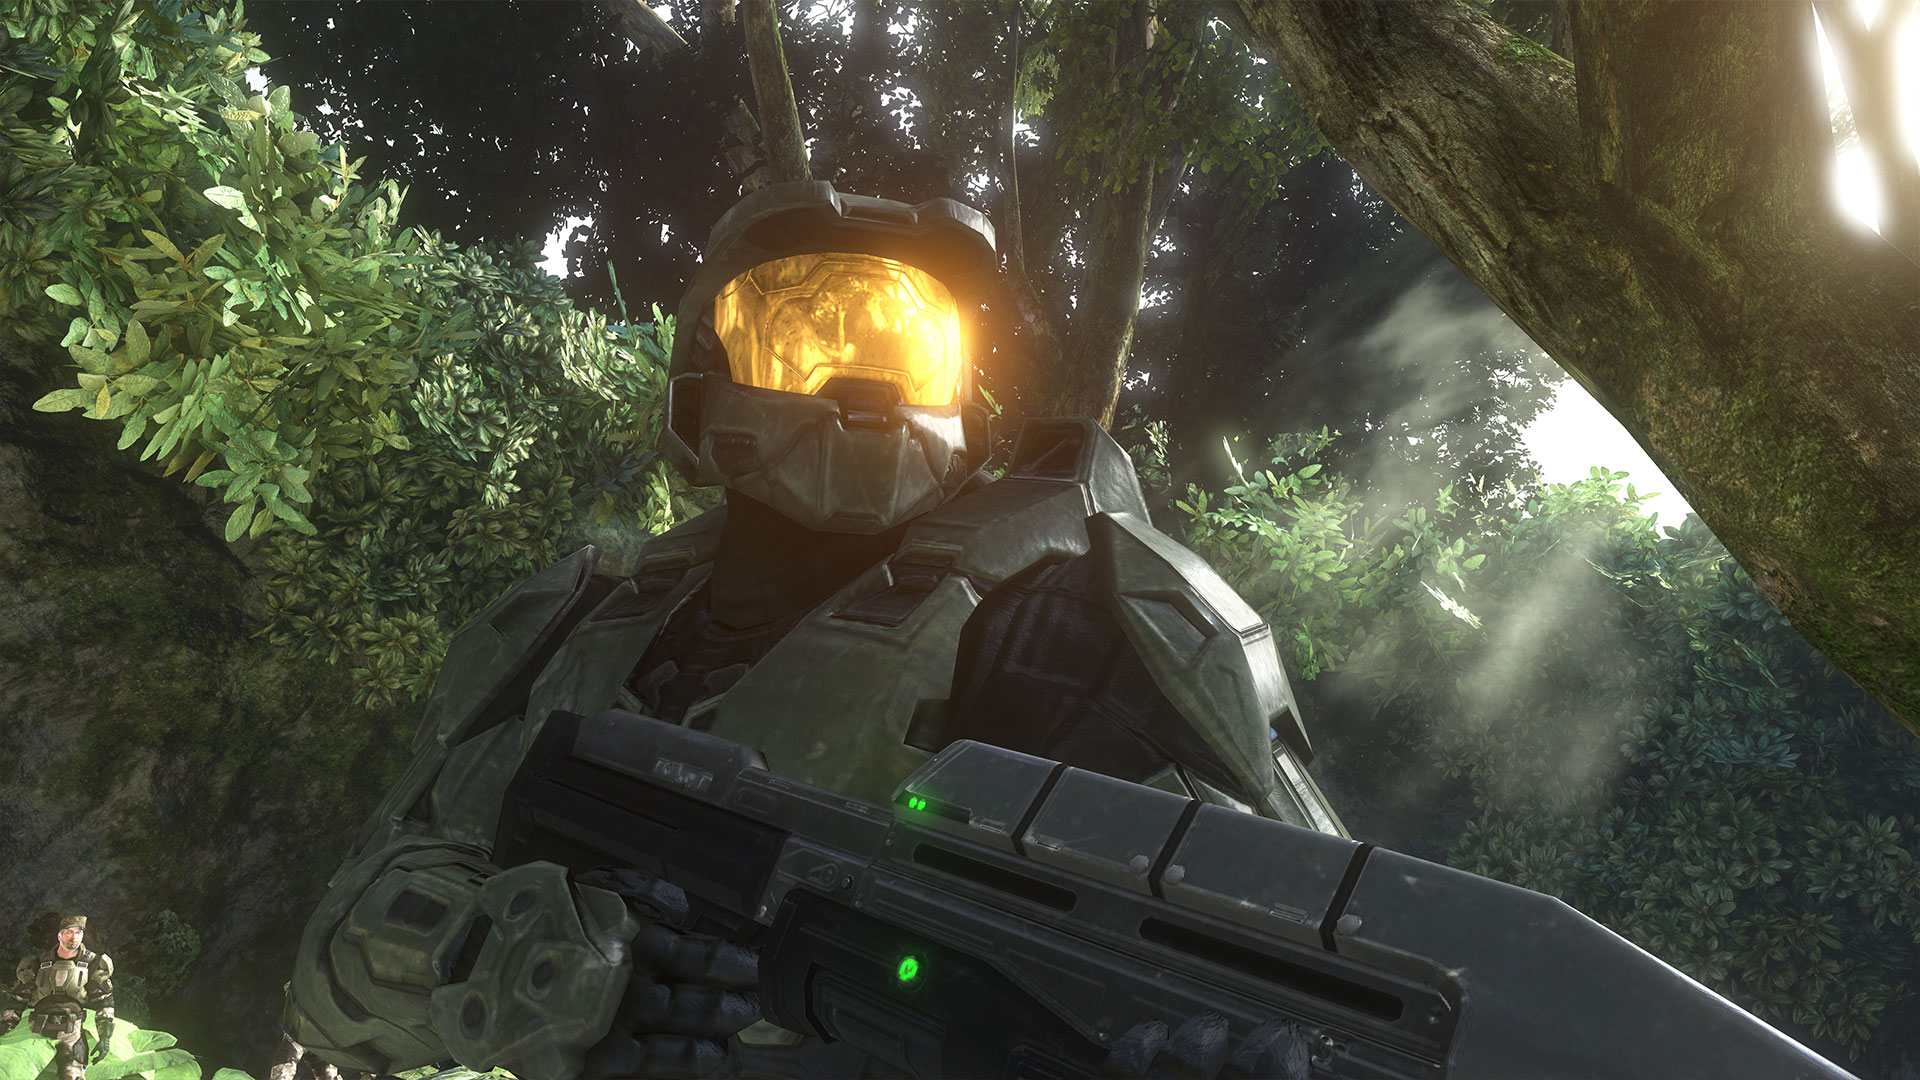 Halo The Master Chief Collection May Support Mods On Pc